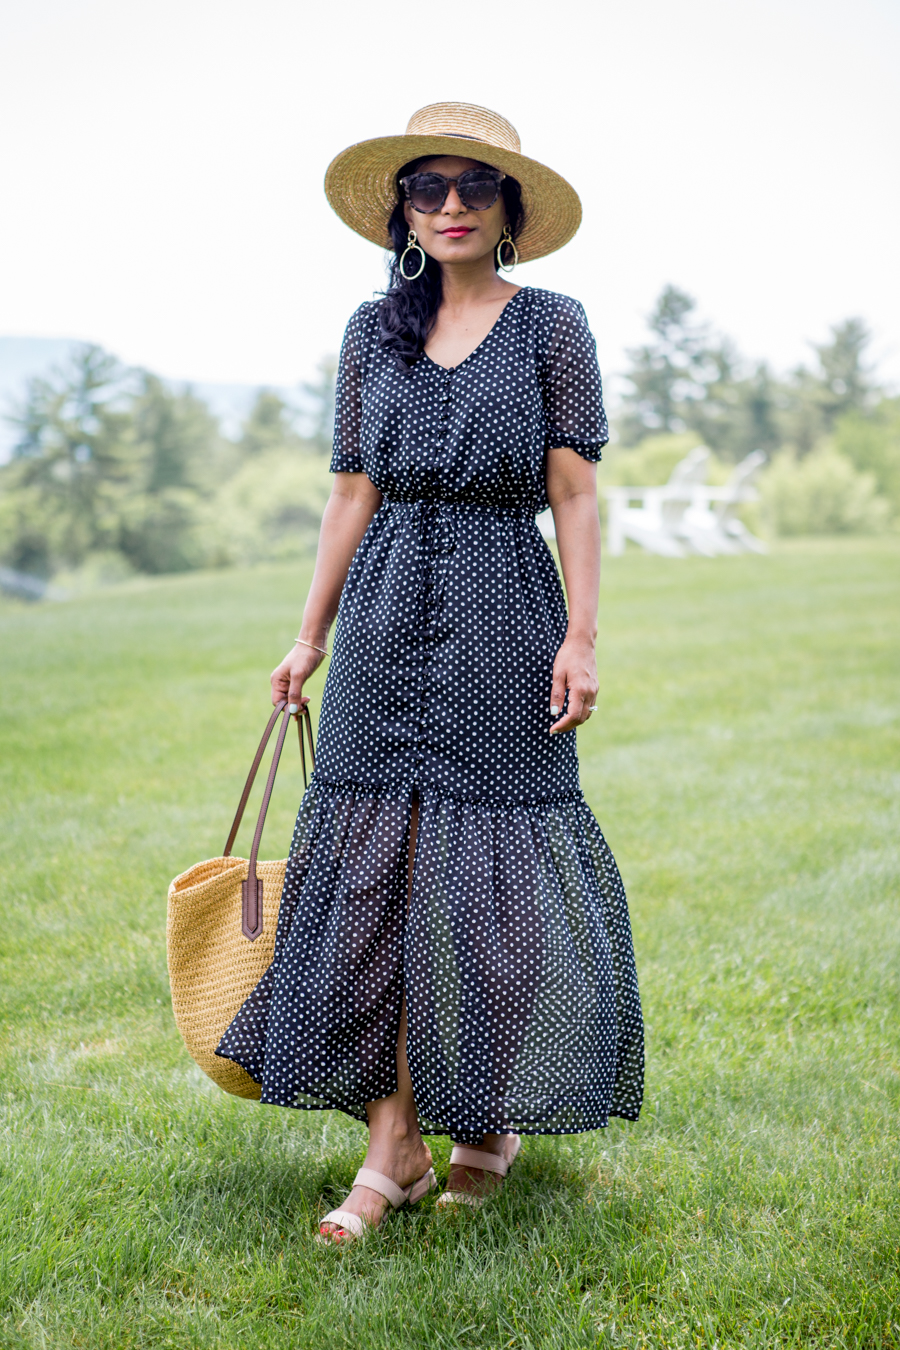 summer style, travel, new england getaways, petite fashion, polka dots, maxi dress, targetstyle, whowhatwear, affordable style, feminine style, straw accesssories, family vacation